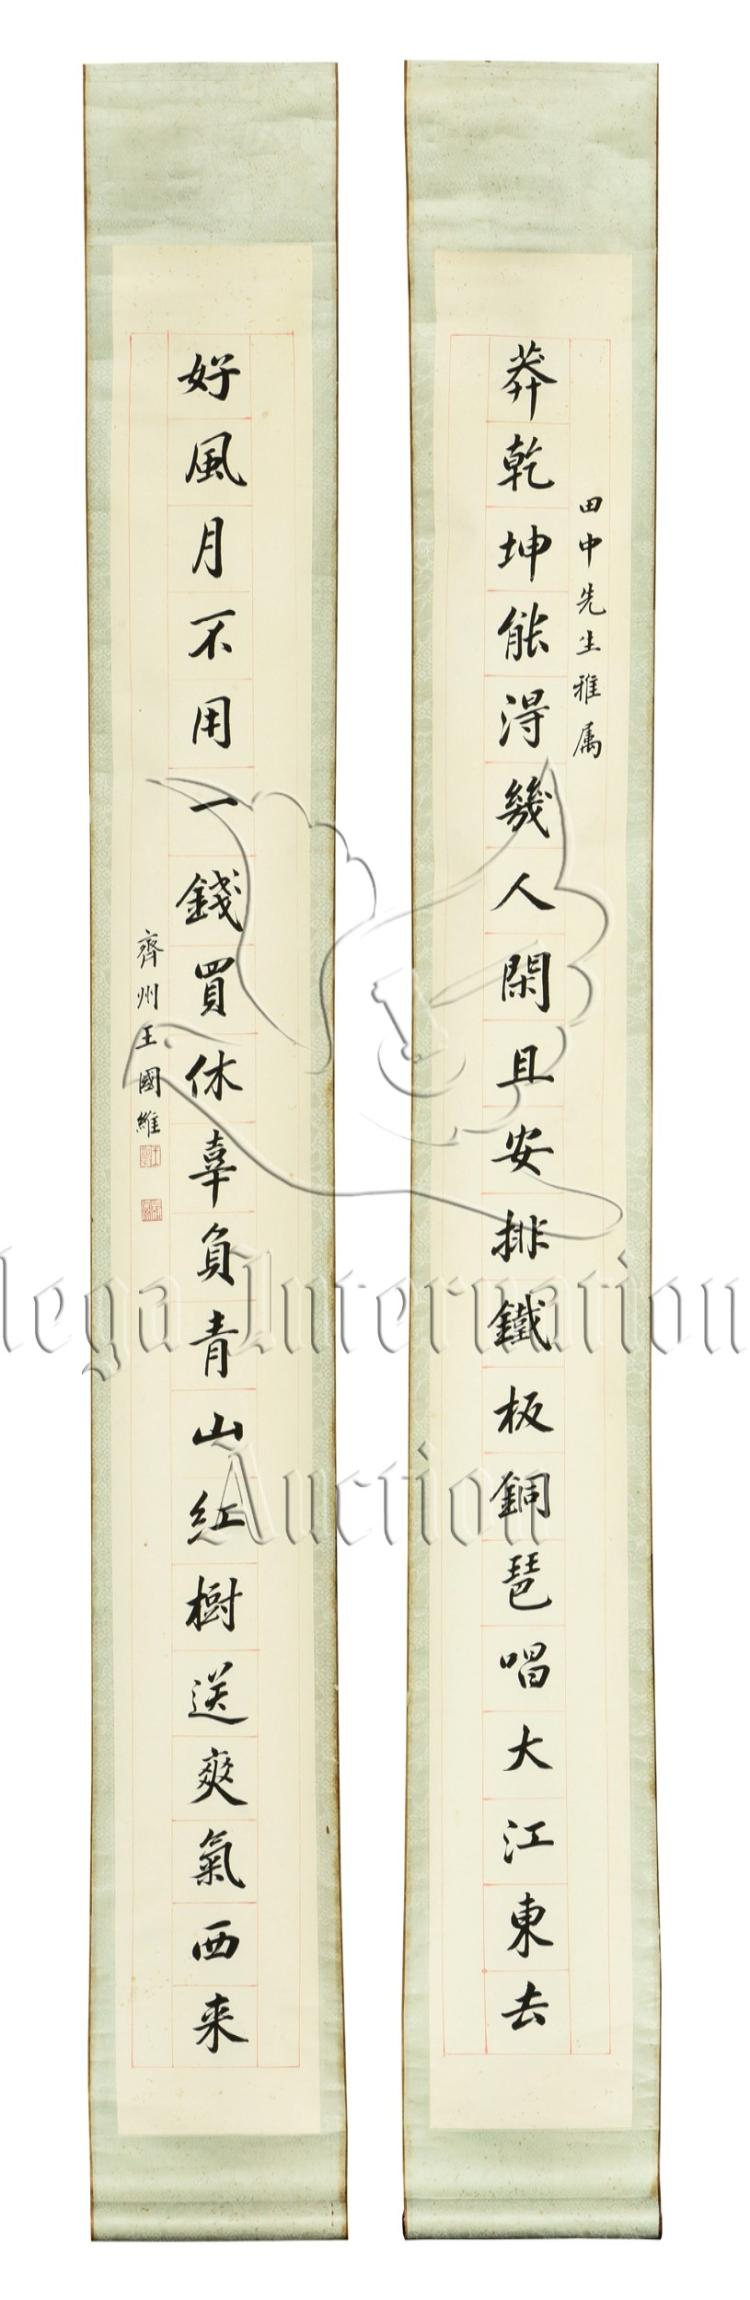 WANG GUOWEI: PAIR OF RHYTHM COUPLET CALLIGRAPHY